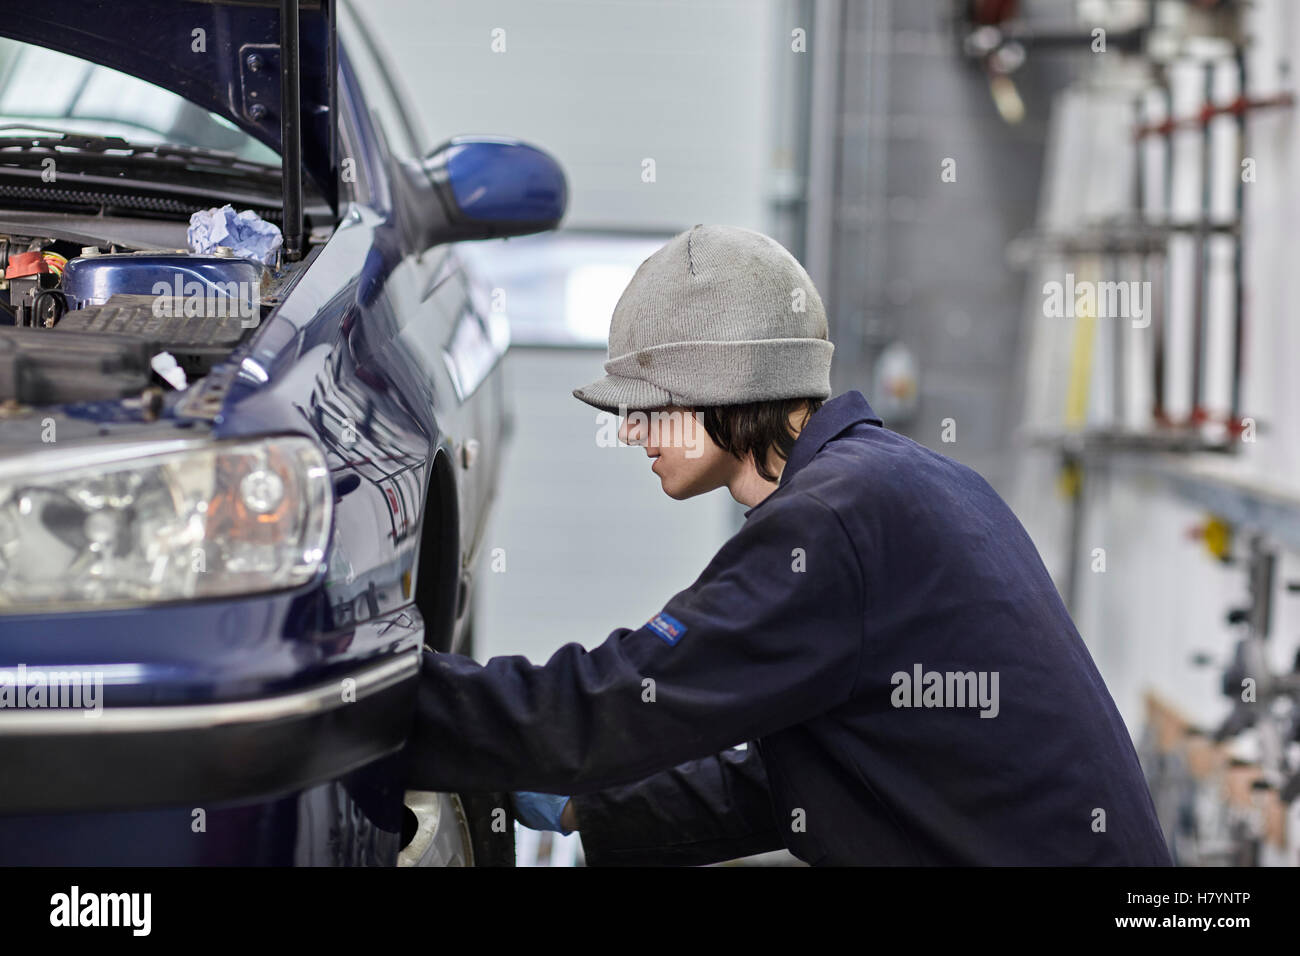 Car Servicing Wheel Change Tyre MOT Motor Vehicle Testing - Stock Image